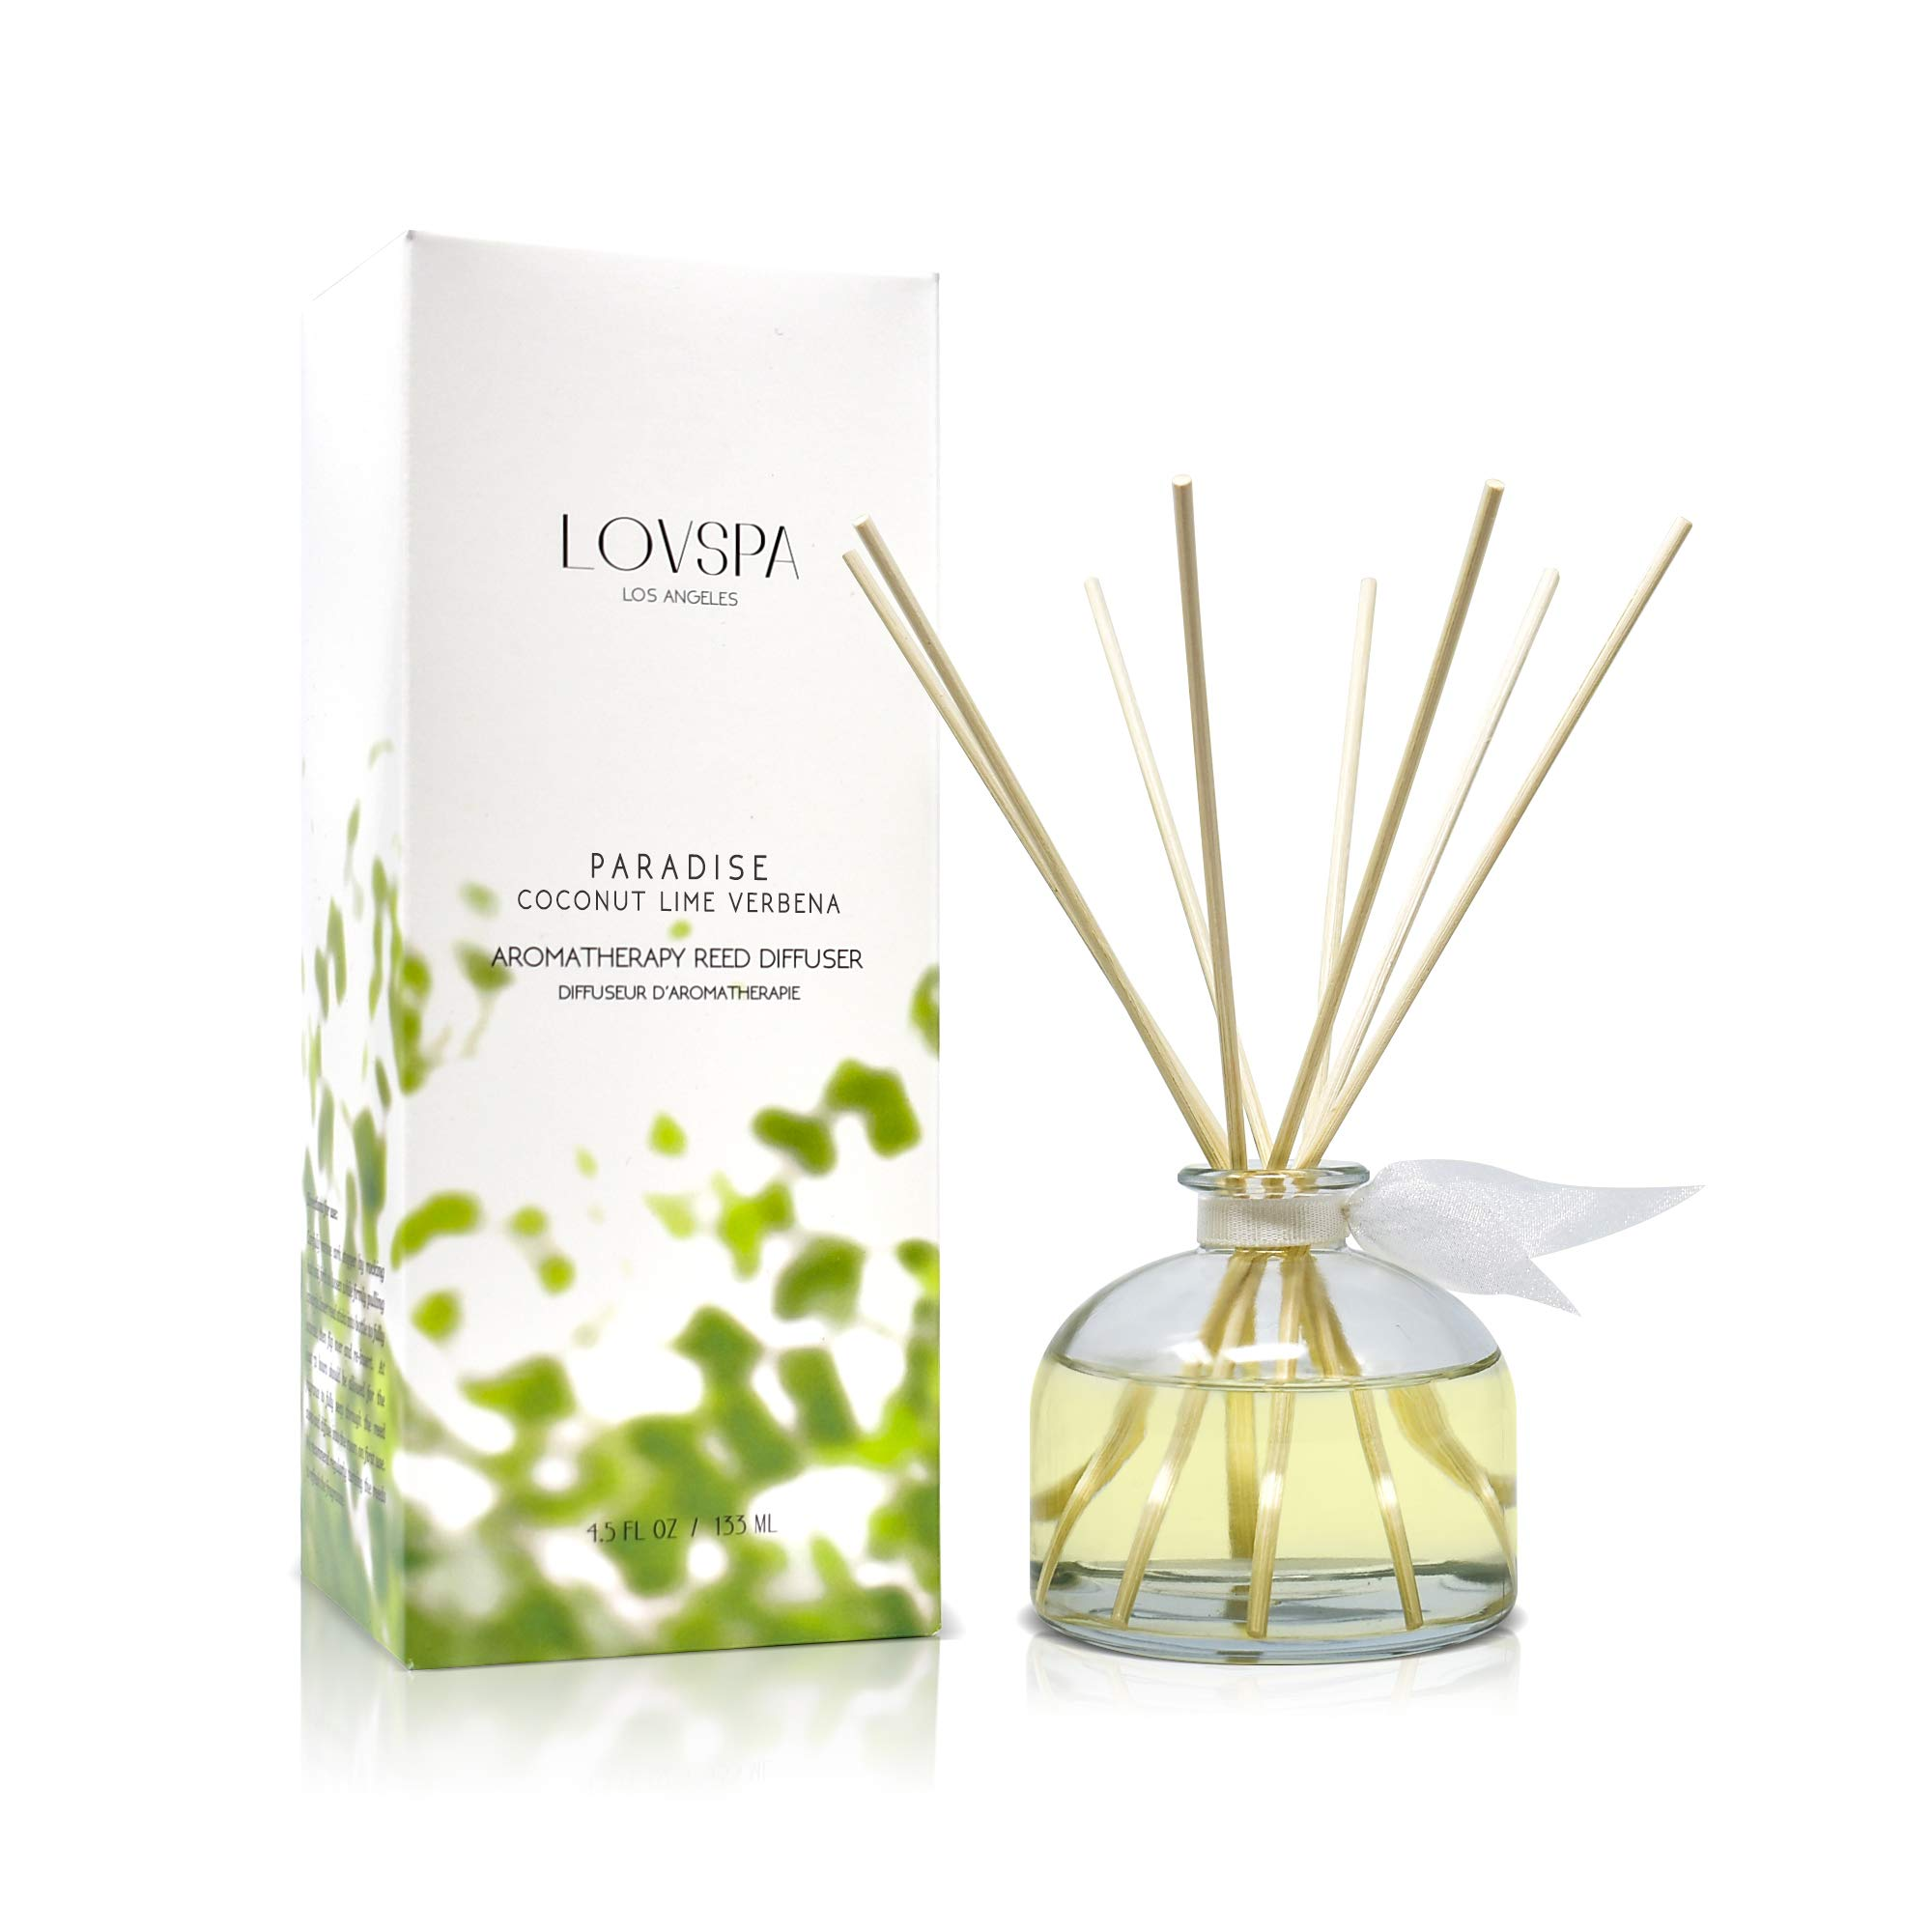 LOVSPA Coconut Lime Verbena Scented Reed Sticks Diffuser Set   Paradise Fragrances   Tropical Blend of Lemon Verbena, Fresh Limes & Coconut   Made in The USA   Great Gift Idea